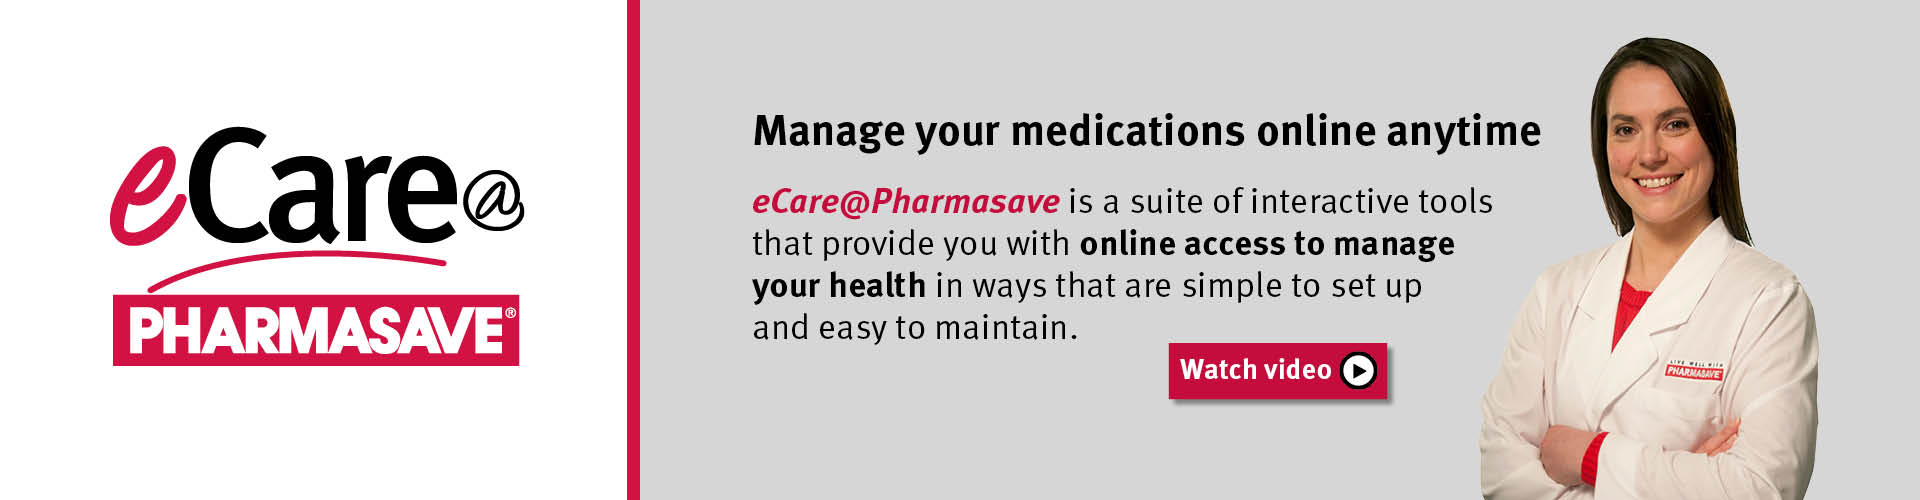 Manage your medication